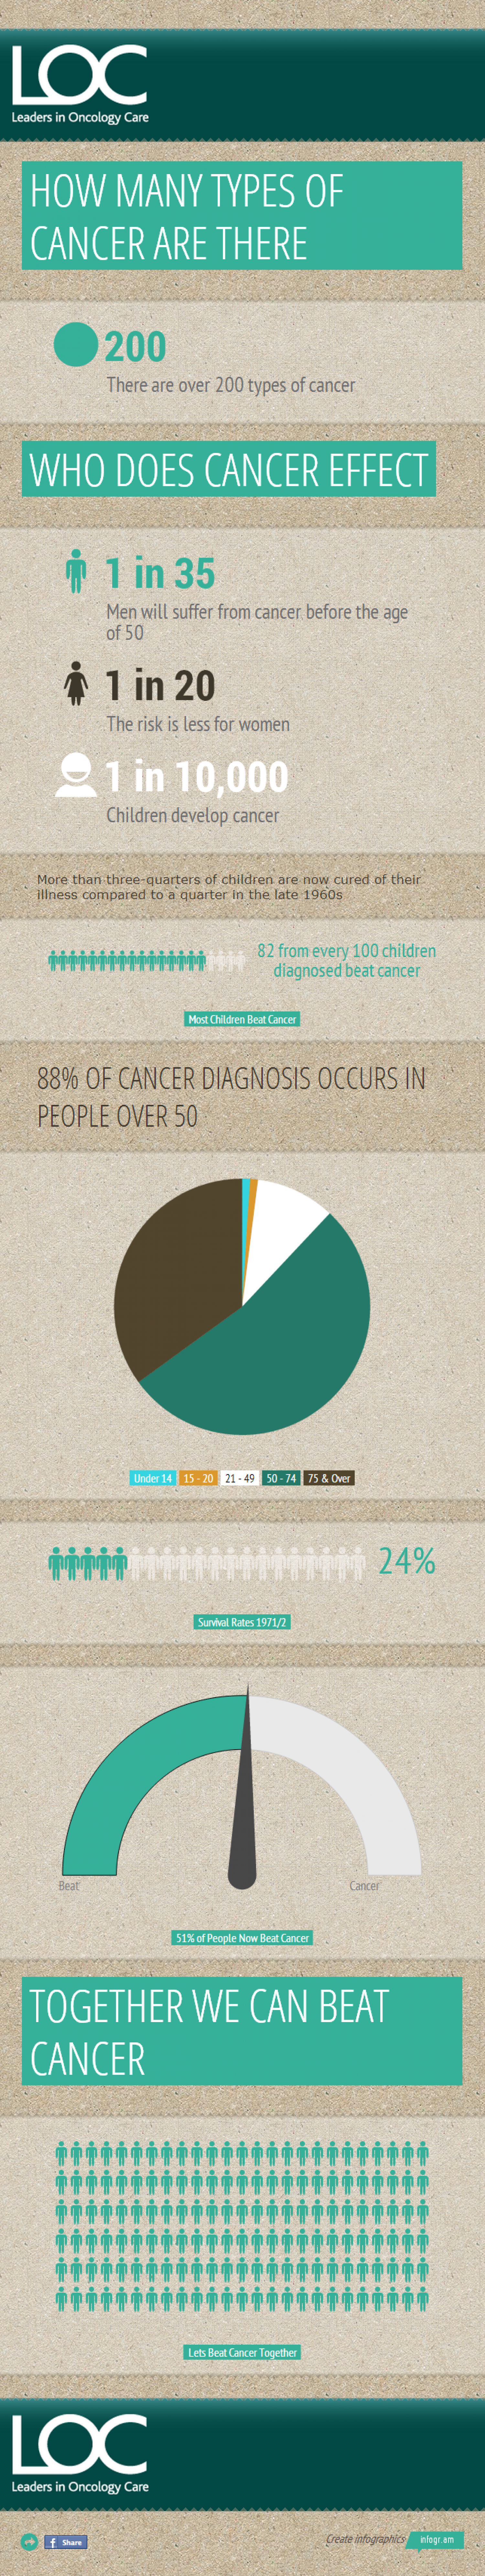 The LOC Cancer Statistics Infographic